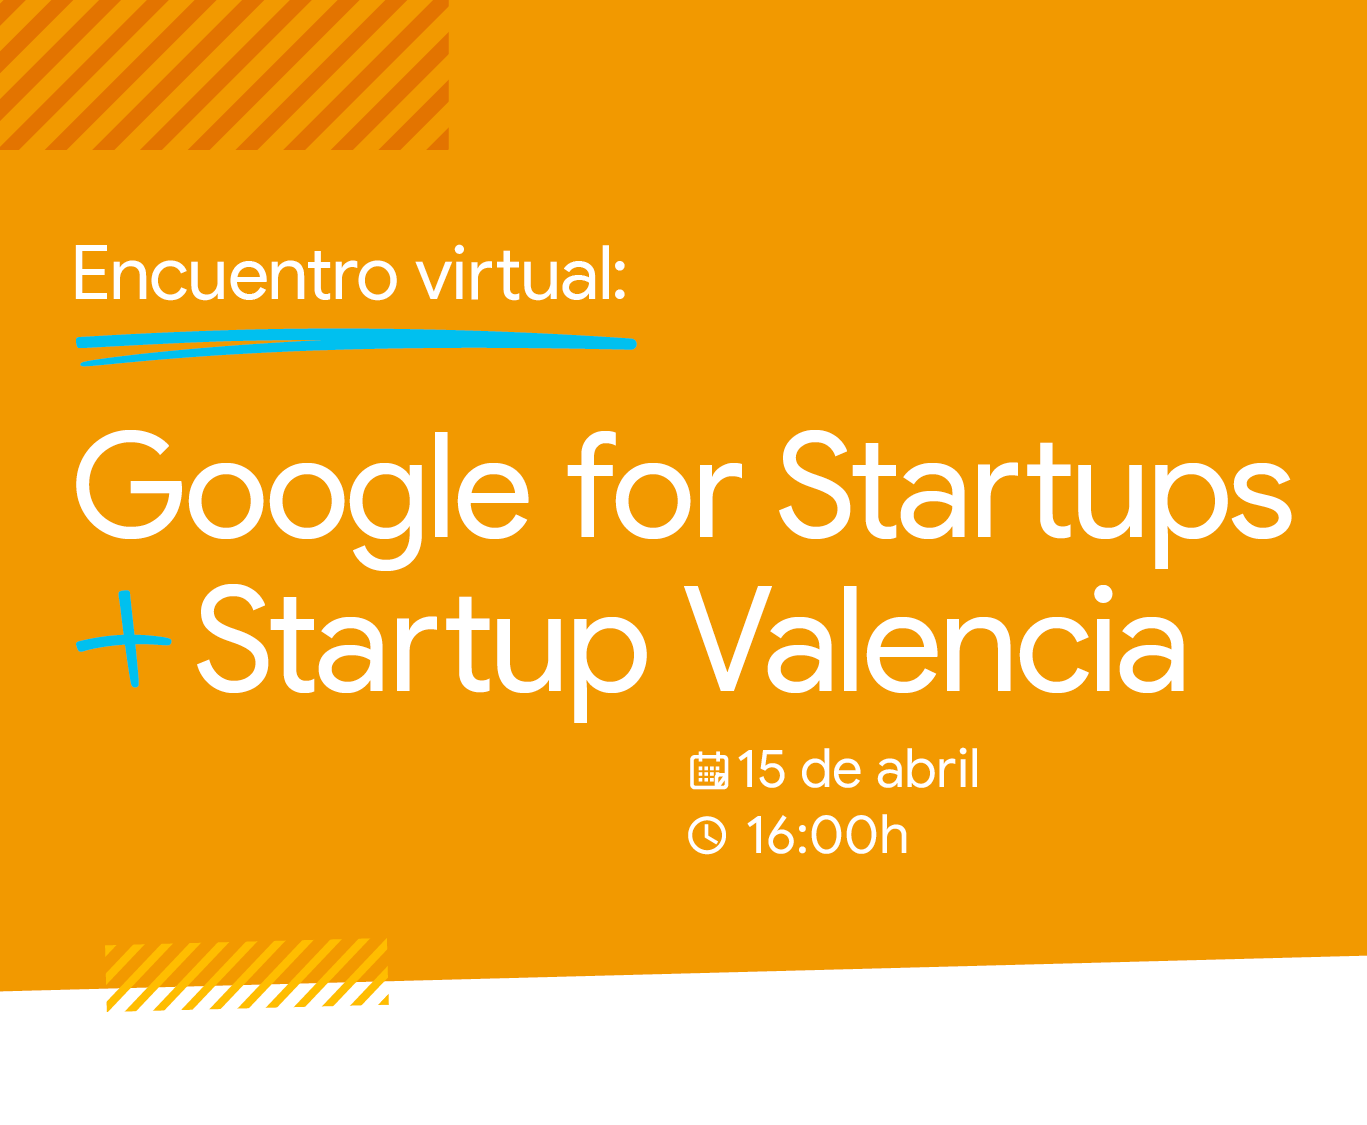 Google for Startups - Startup Valencia